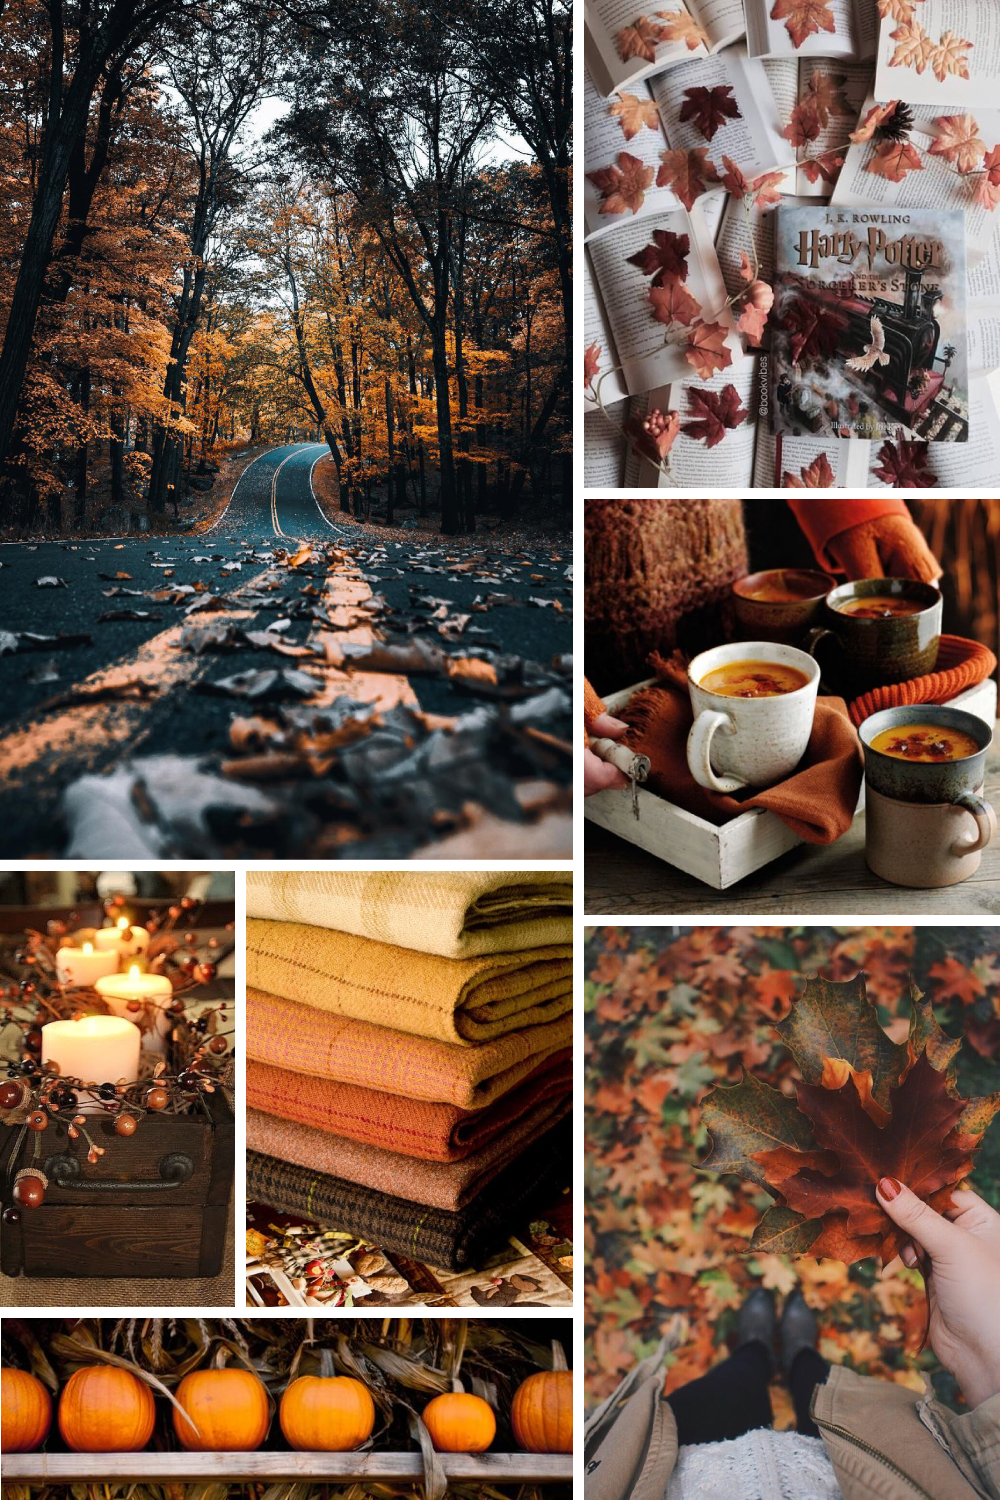 Fall Fun | What Fall Means to Me